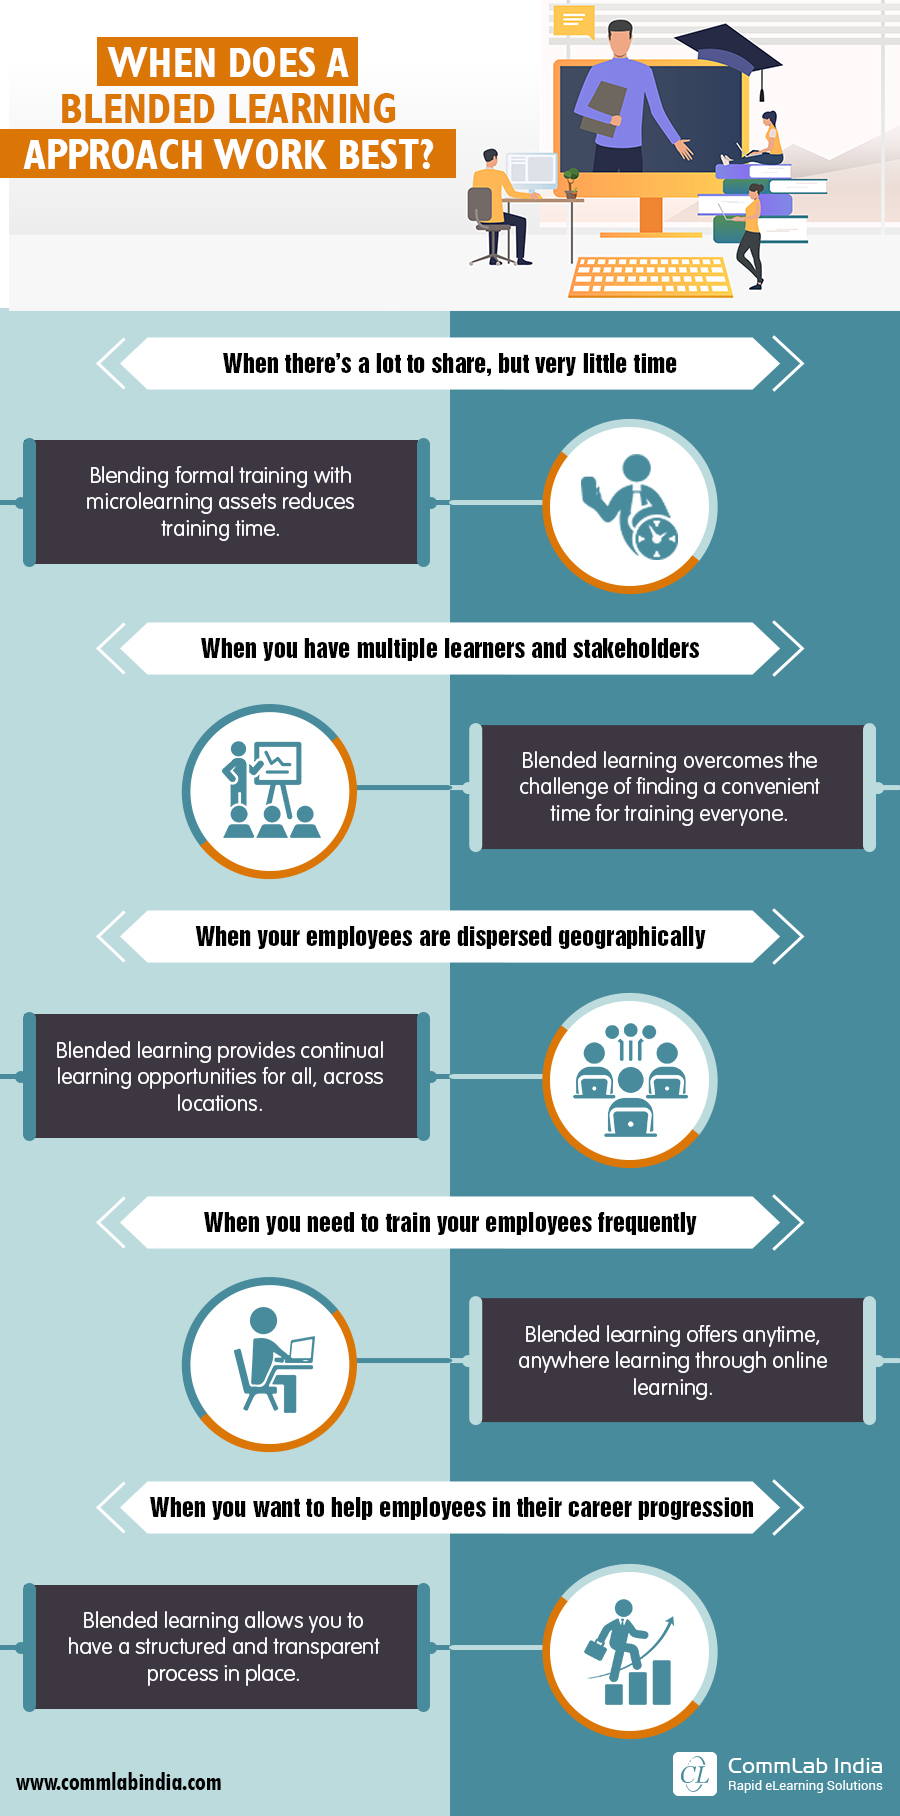 When Does a Blended Learning Approach Work Best? [Infographic]